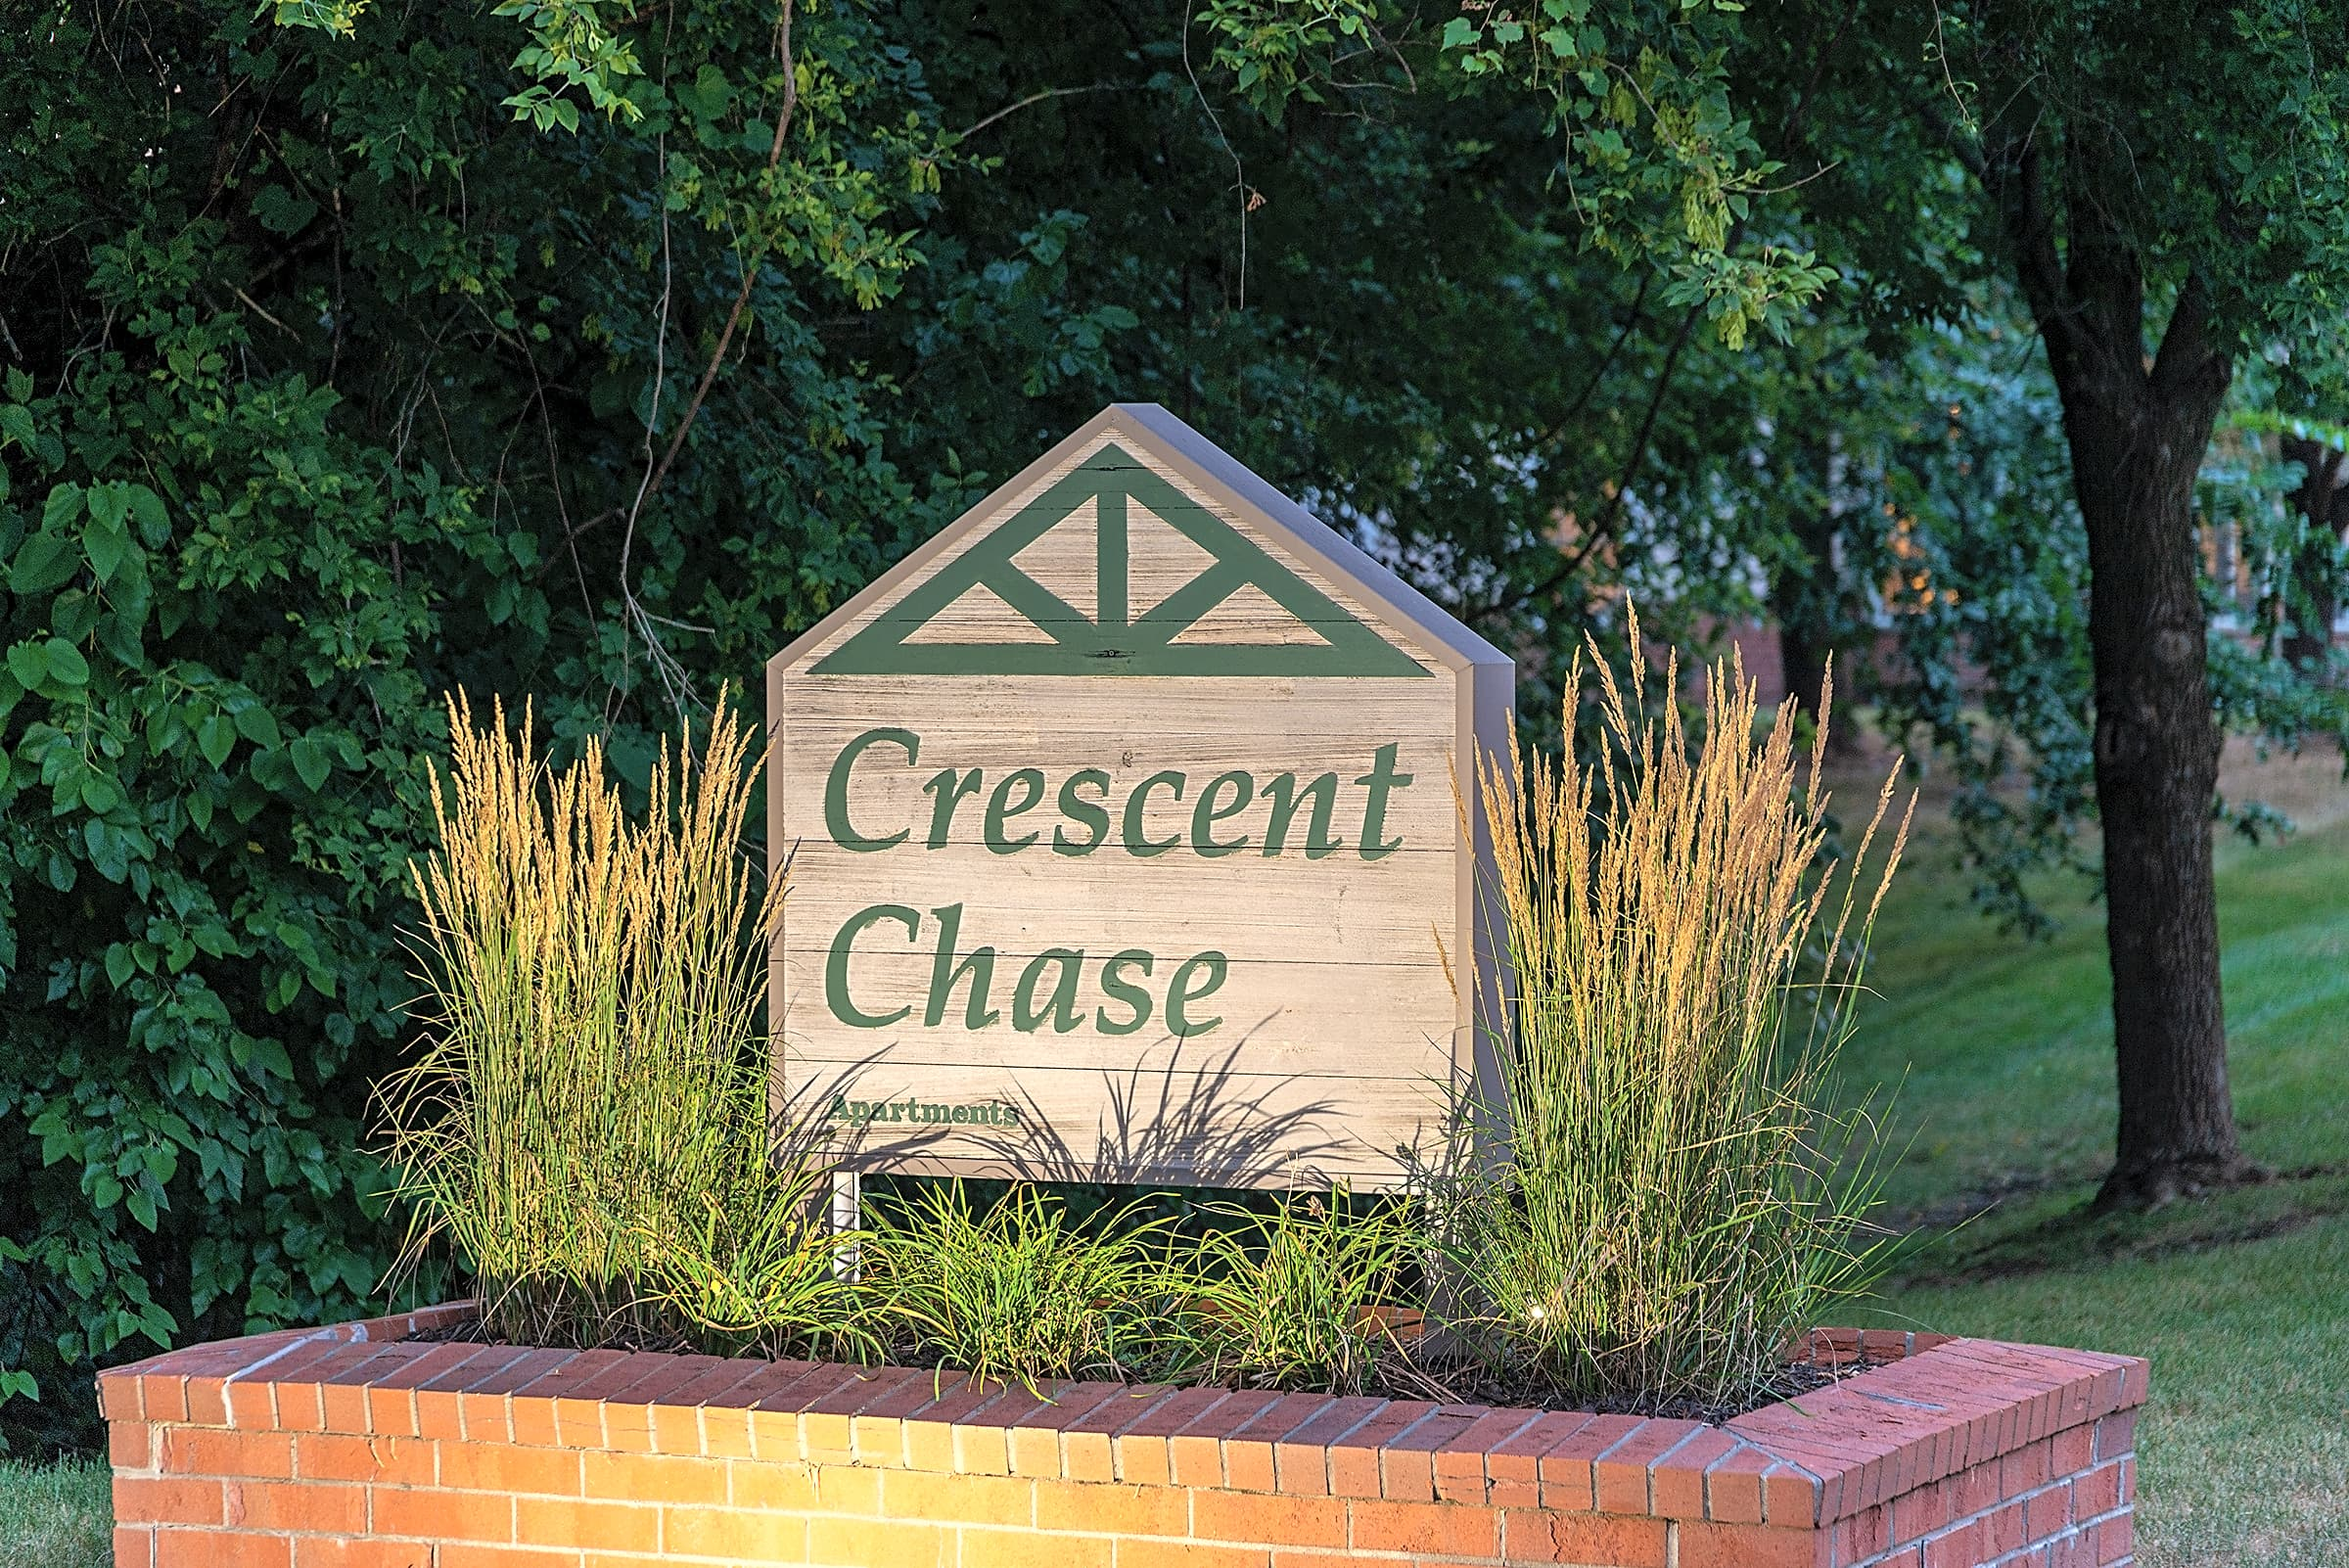 Apartments Near Kaplan University-Des Moines Campus Crescent Chase for Kaplan University-Des Moines Campus Students in Urbandale, IA